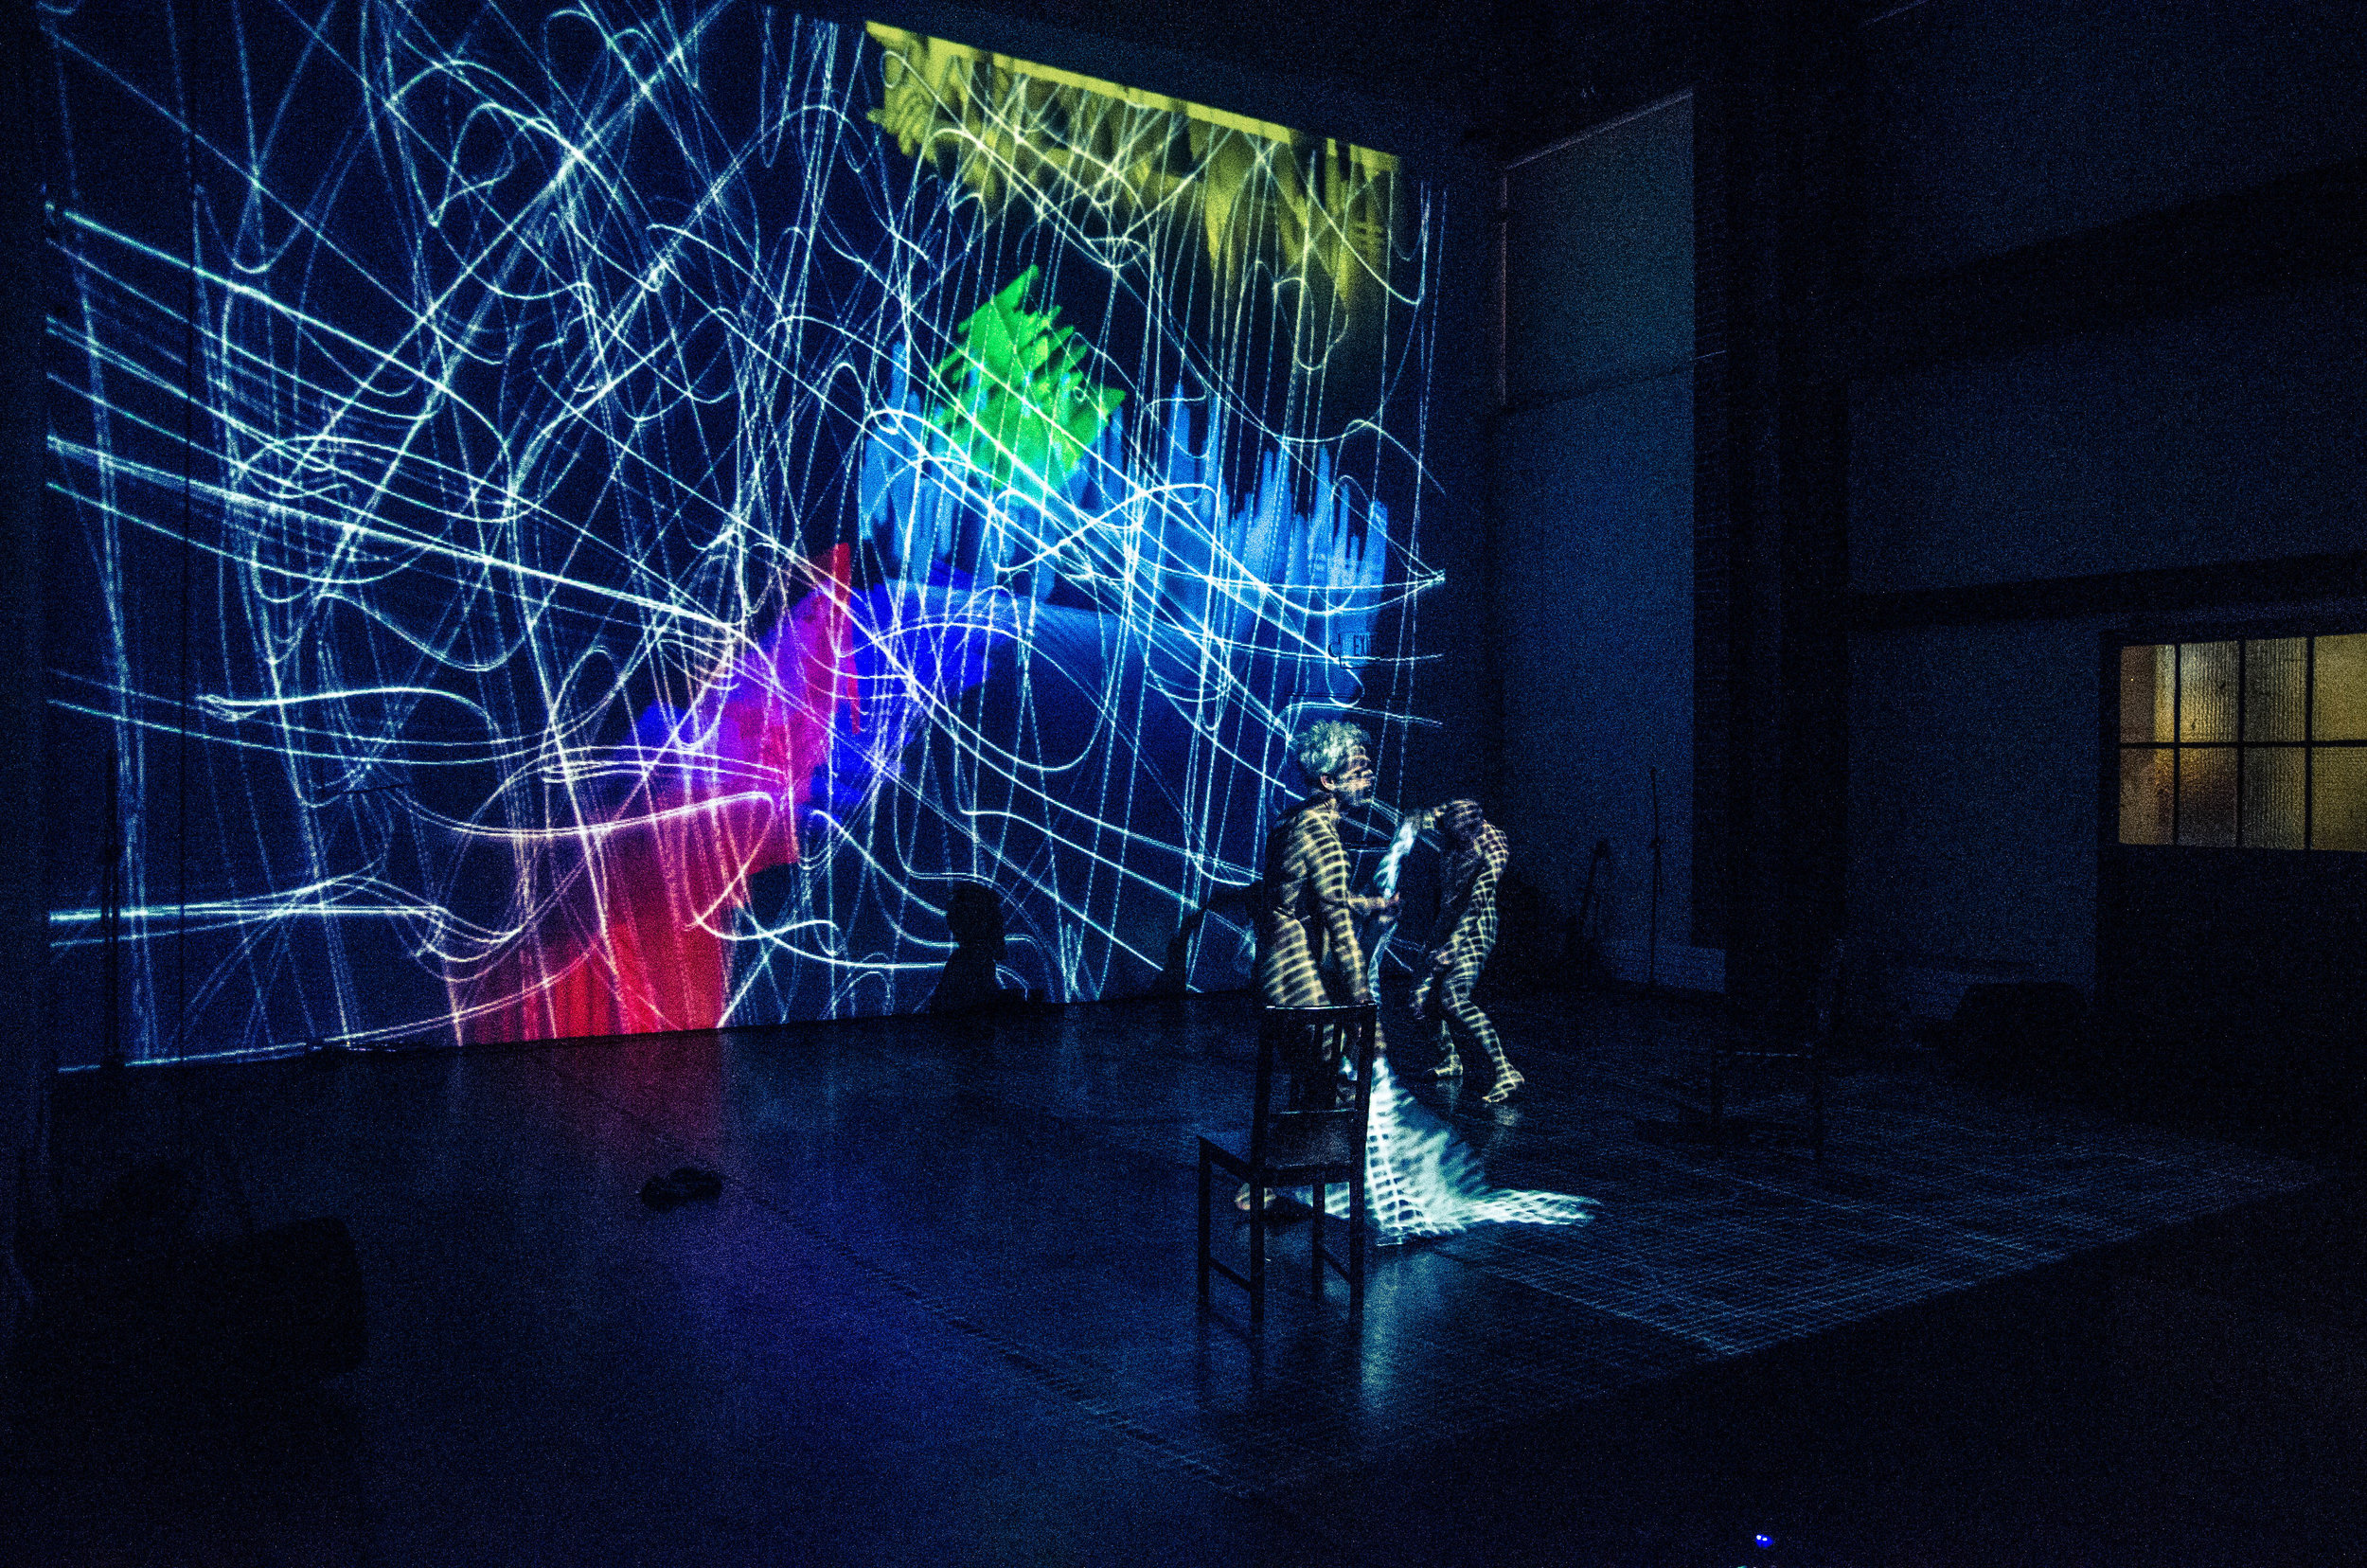 Wild scribbles of brightly colored projections fill the back wall. Curtis and Müller, both nude, bathed in graphic light pattern. (photo: Robbie Sweeny)